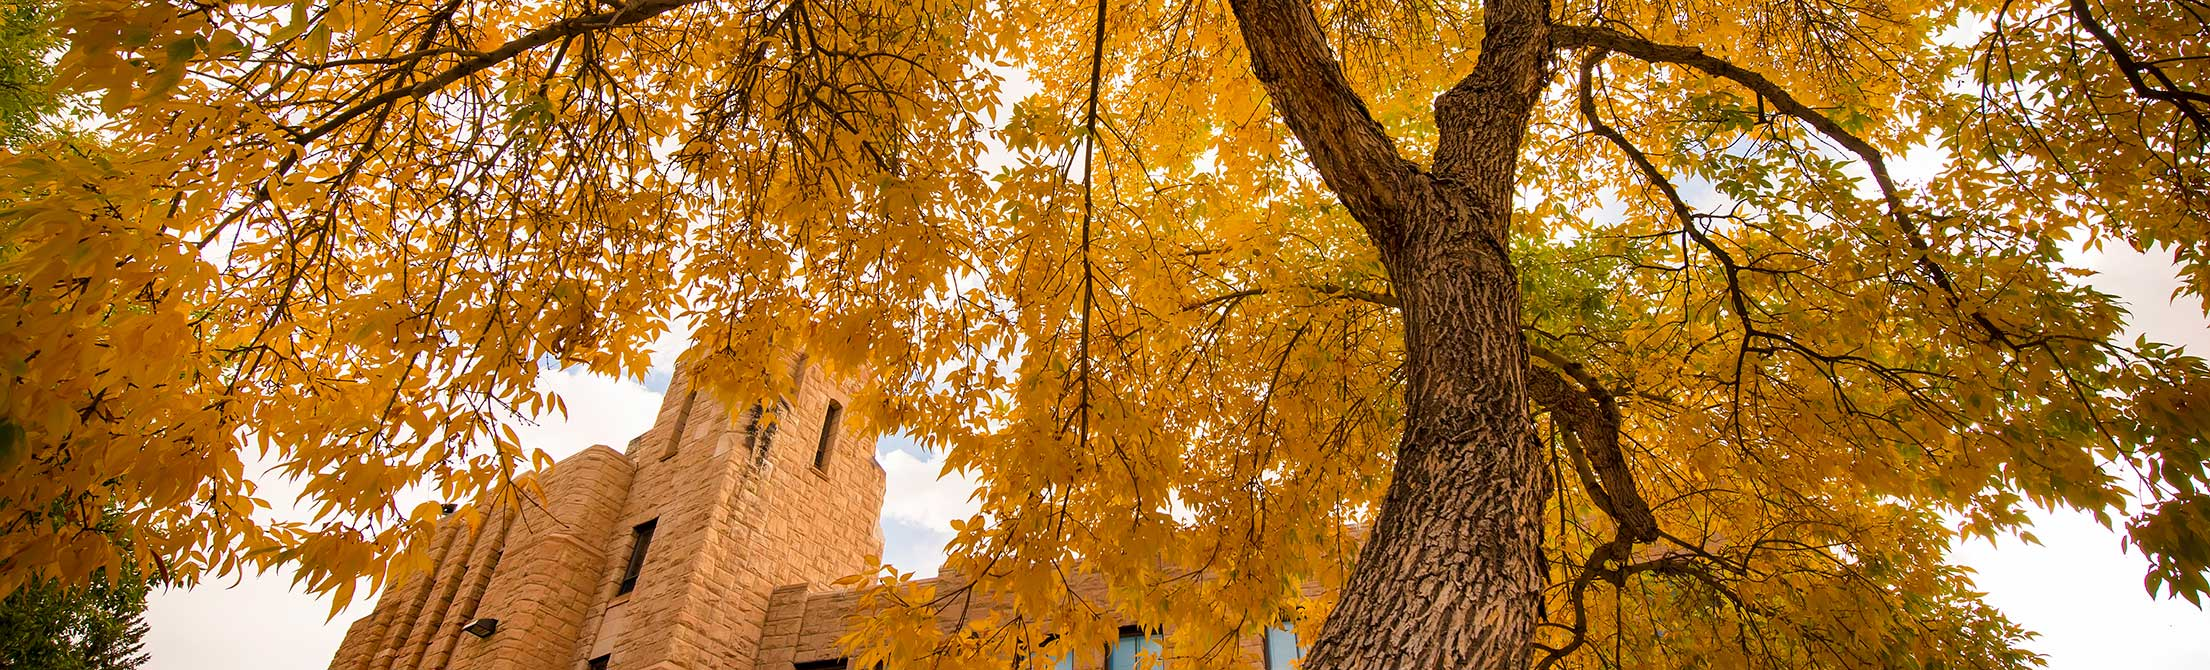 Golden tree by the union building in the fall